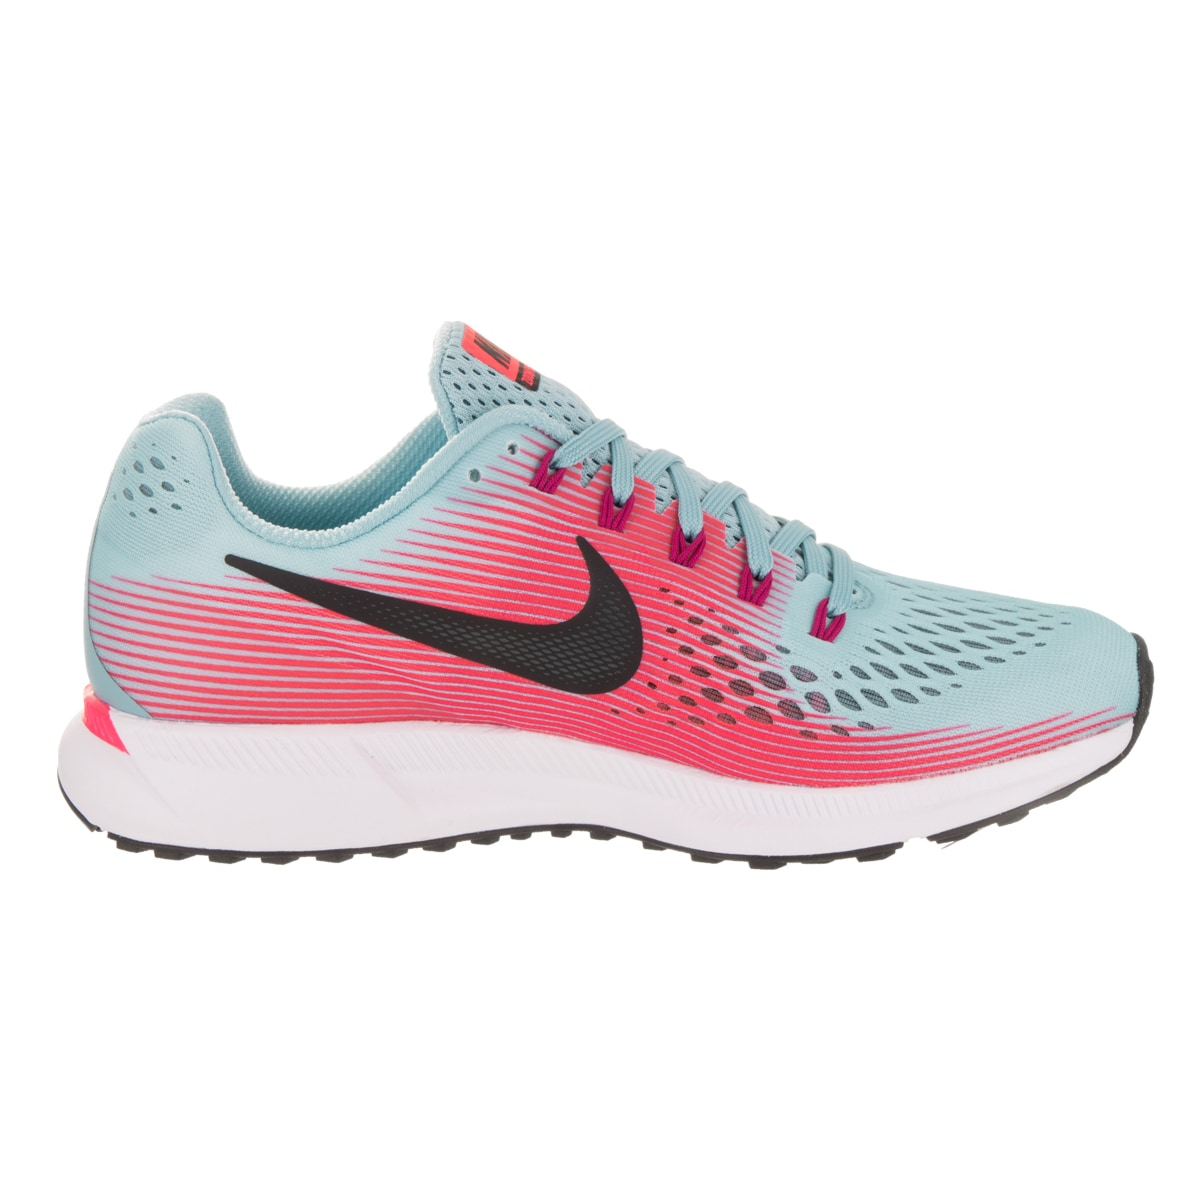 new arrival 5bda5 93a9c inexpensive shop nike womens air zoom pegasus 34 blue pink synthetic  leather running shoes free shipping